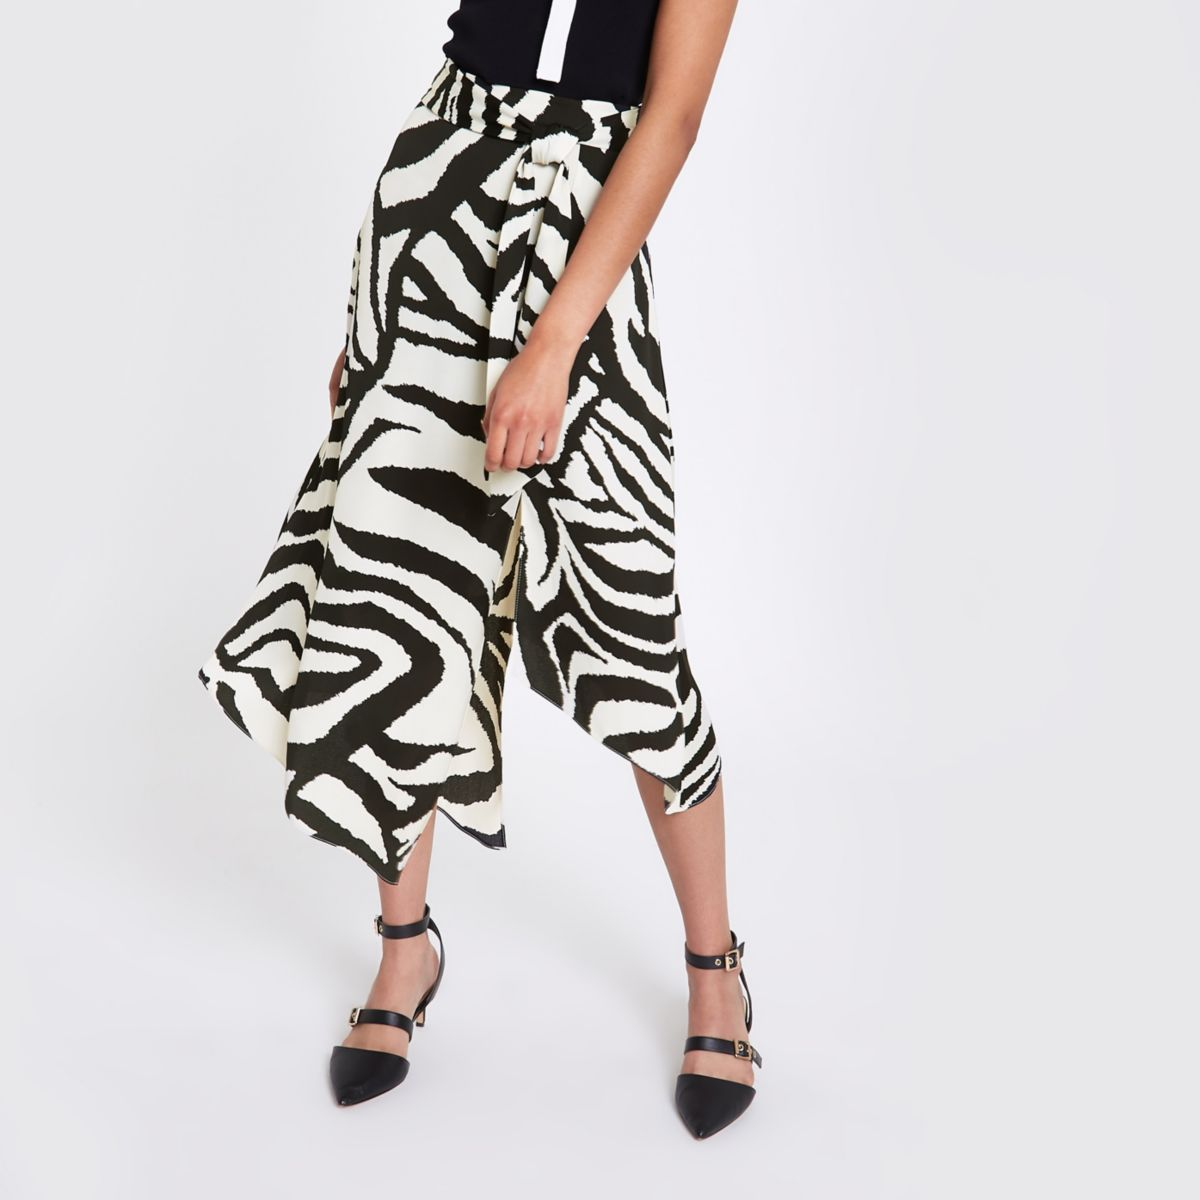 a448b3bf41 We're kind of obsessed with the €43 River Island skirt that's all ...